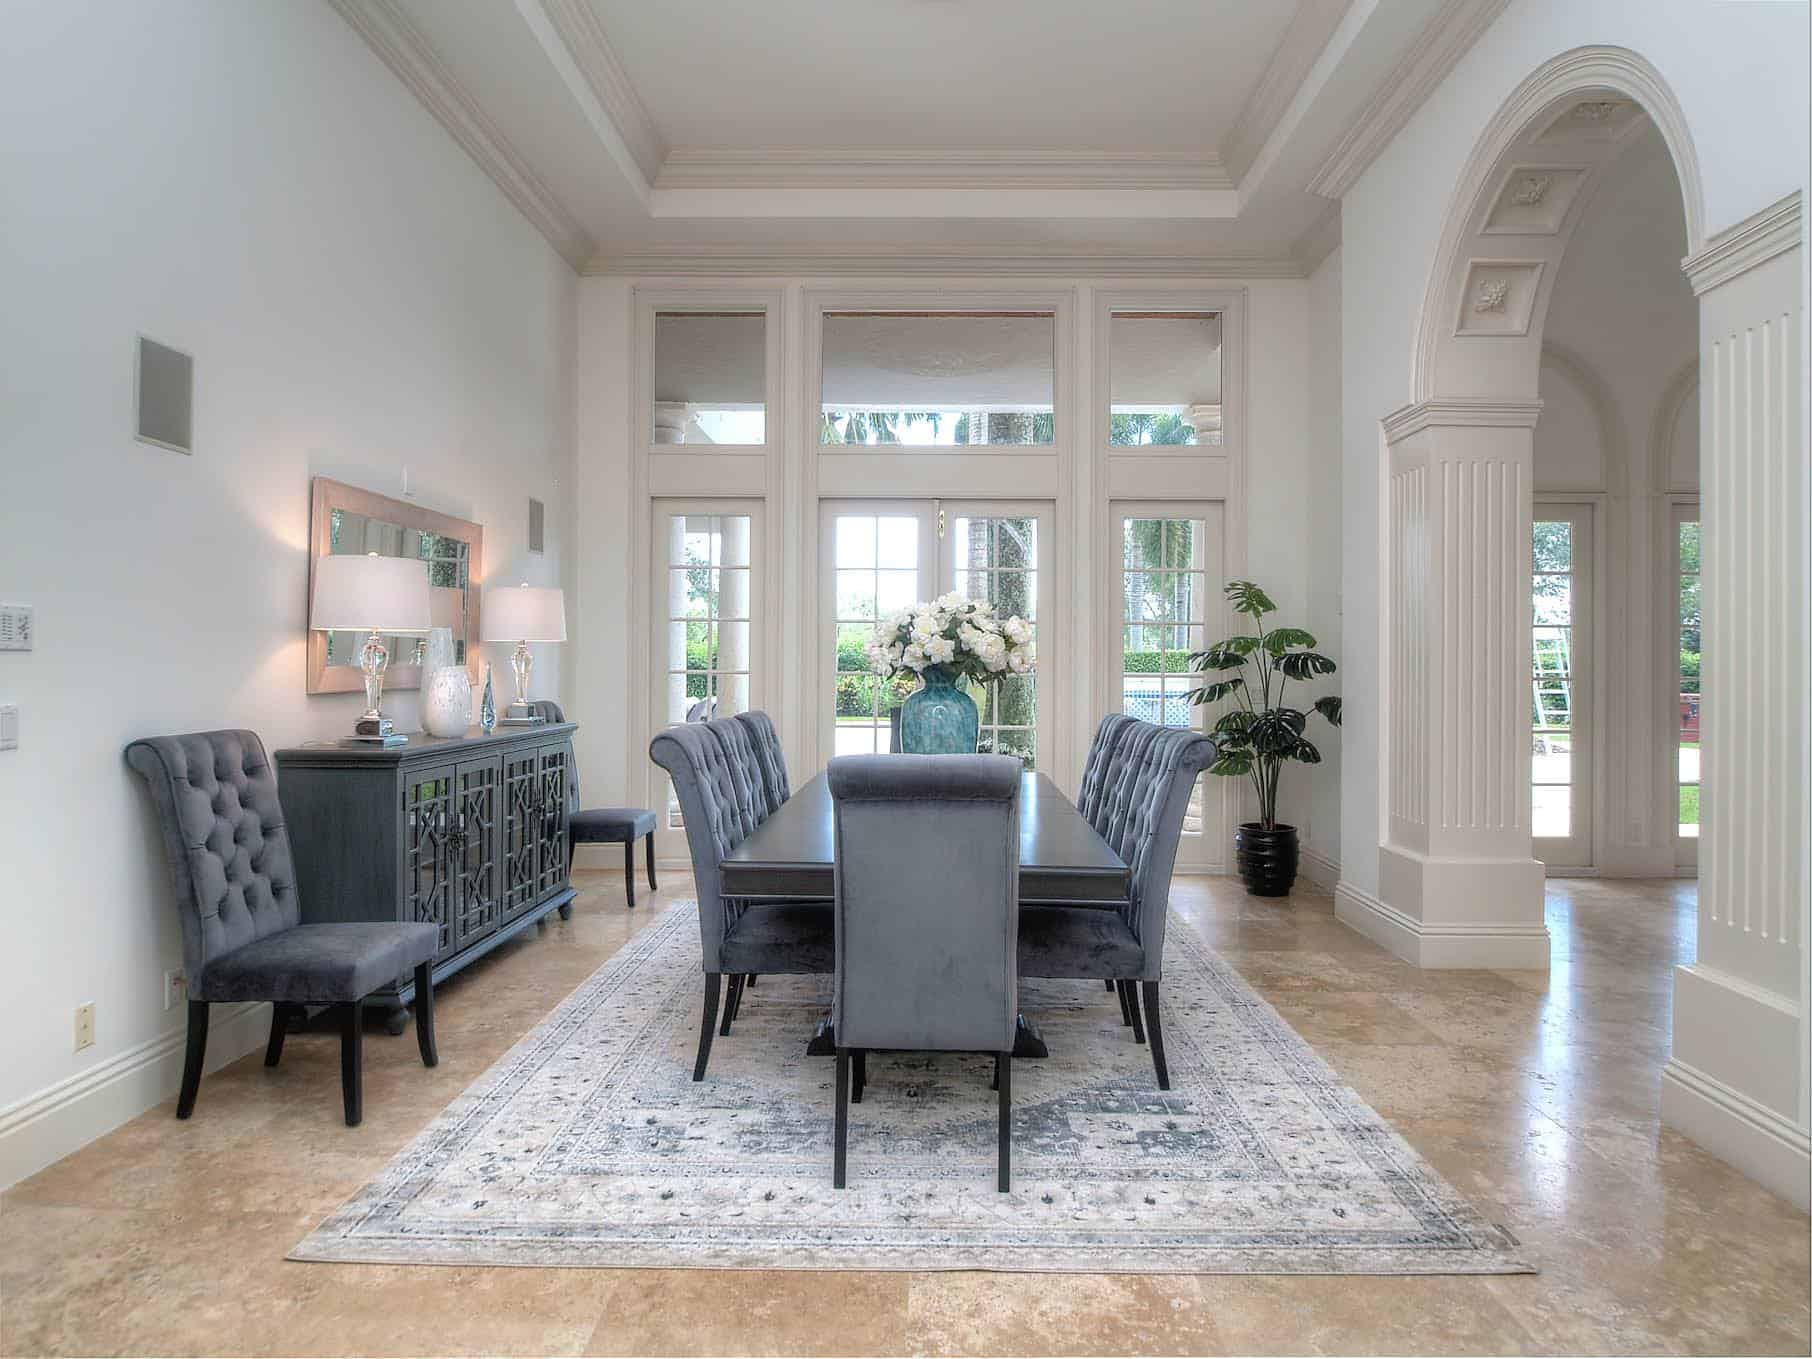 PRICE BRINGS INTEREST … STAGING SELLS!